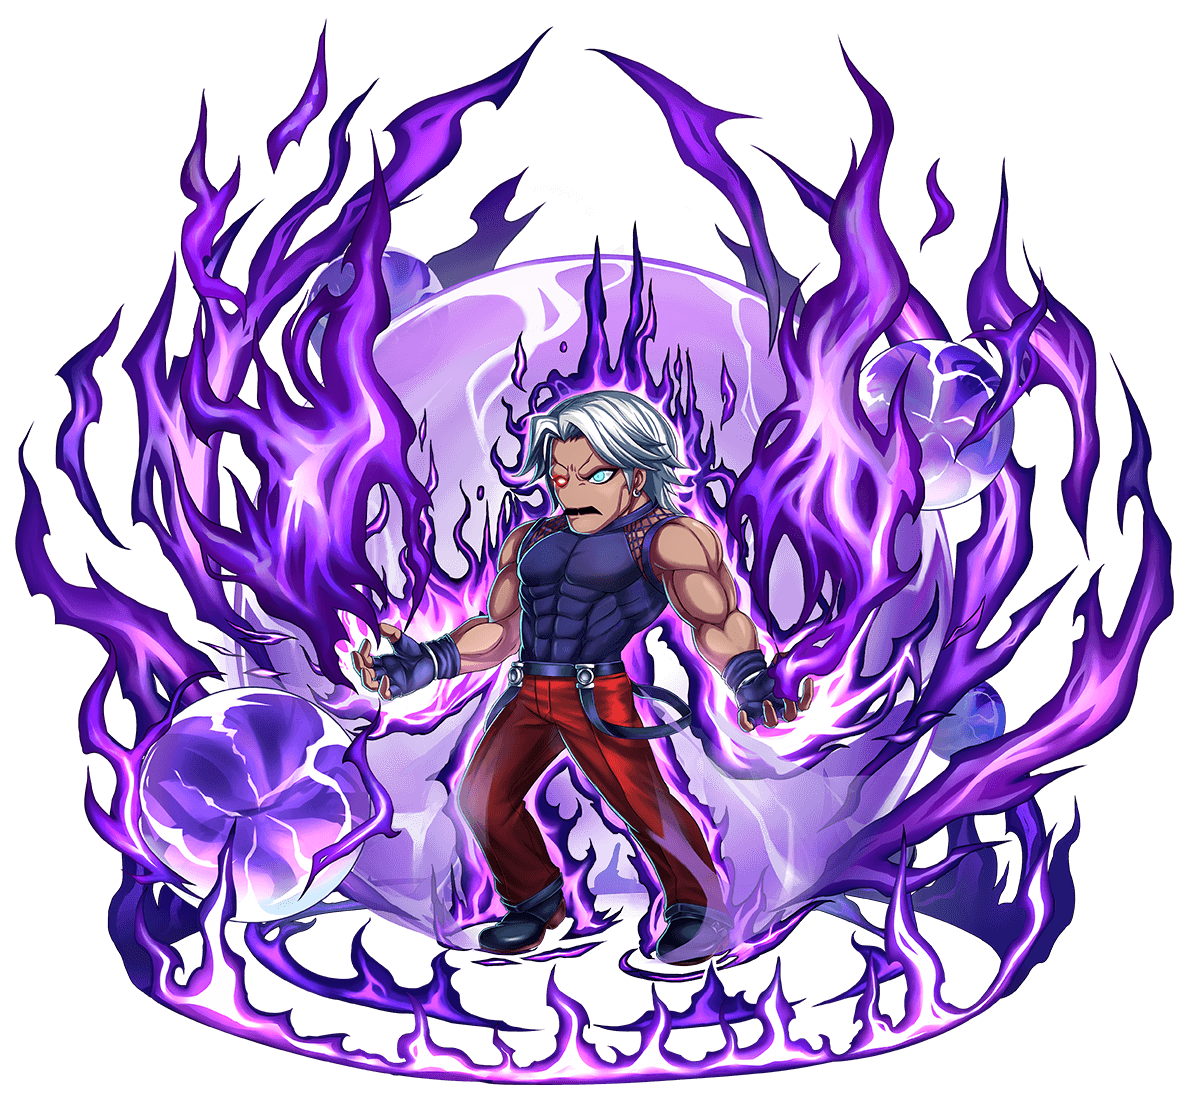 King Of Fighters Crossover With Brave Frontier Artwork